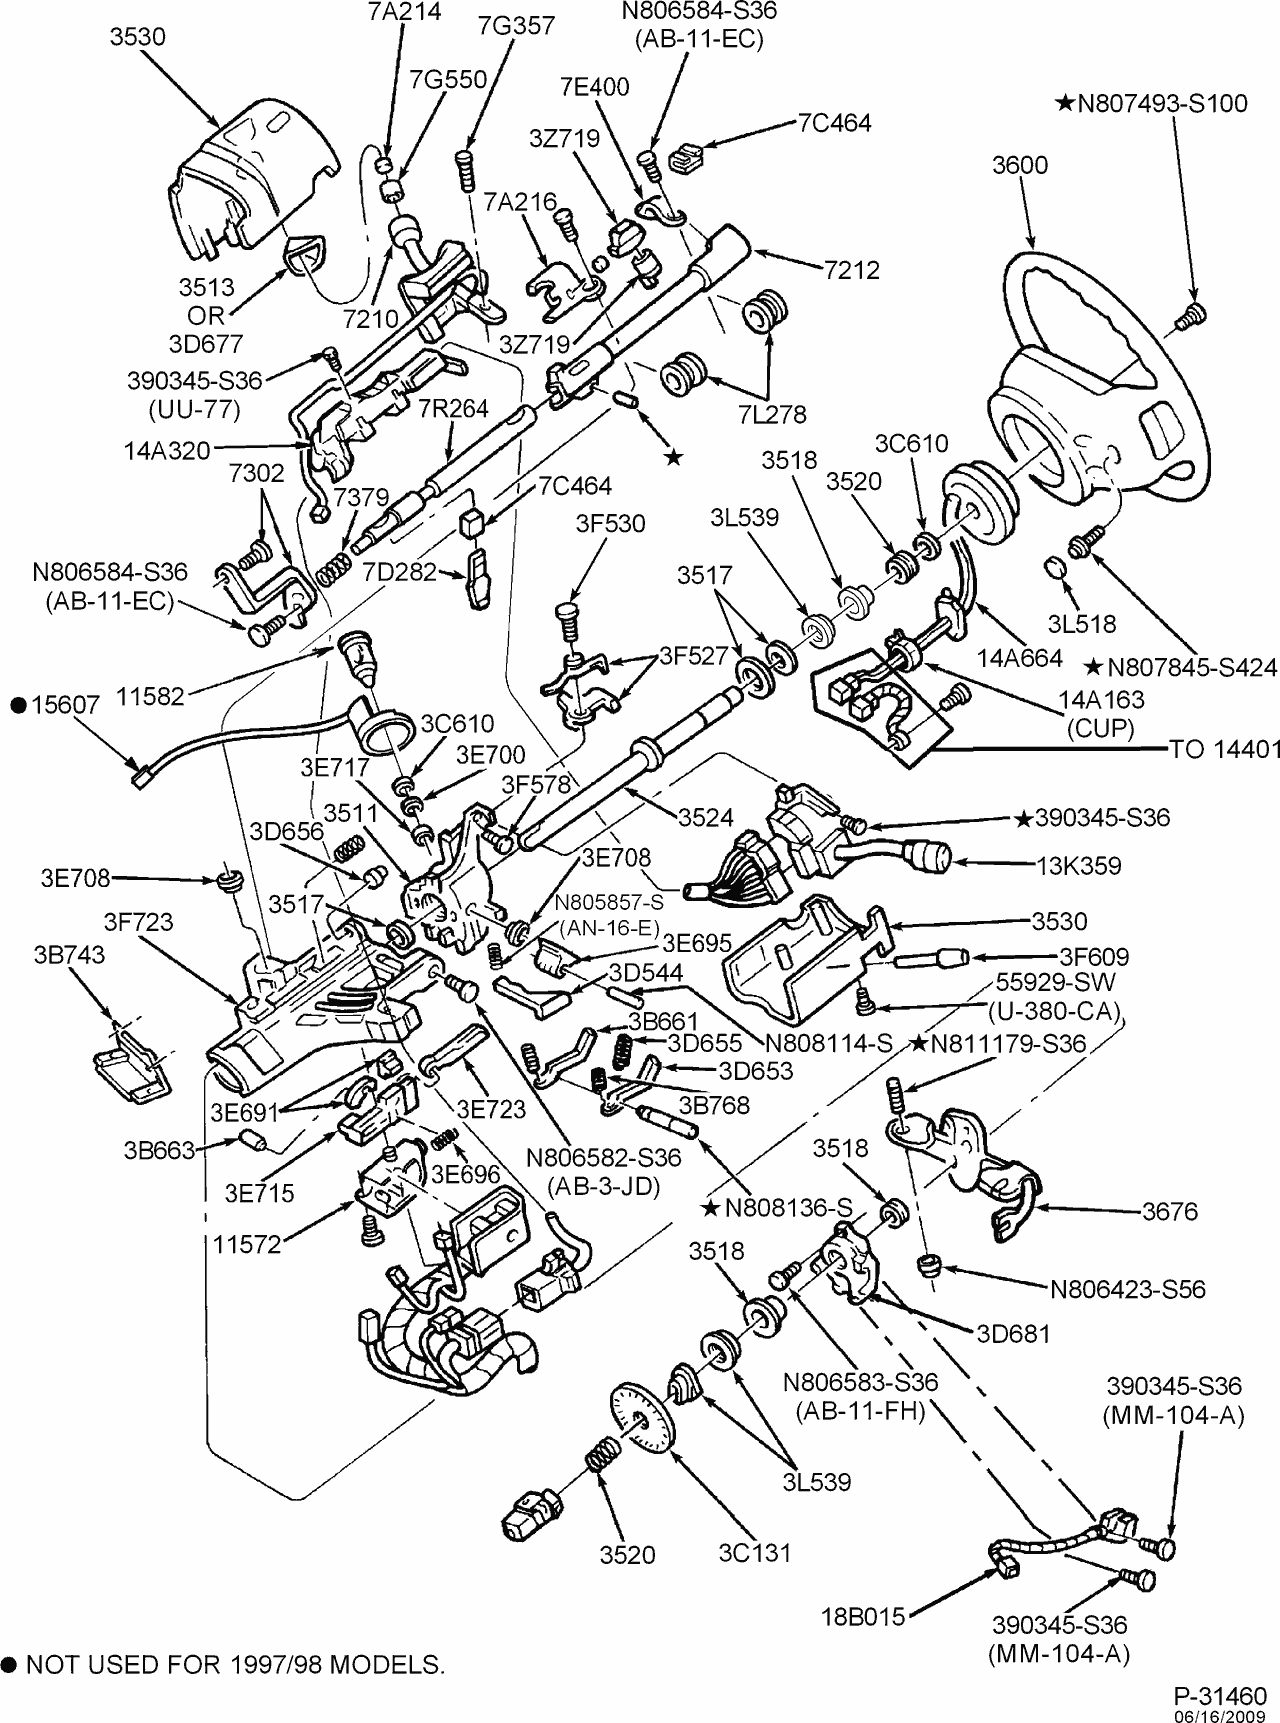 700r4 Lockup Wiring Diagram Attached Thumbnails 700r4 Wiring Diagram Chevy 700r4 Transmission Wiring Diagram 700r Transmission Lockup Switch likewise HW1552 also Showthread likewise Diagrams additionally 1977 Corvette Windshield Wiper Wiring Diagram. on corvette schematics diagrams